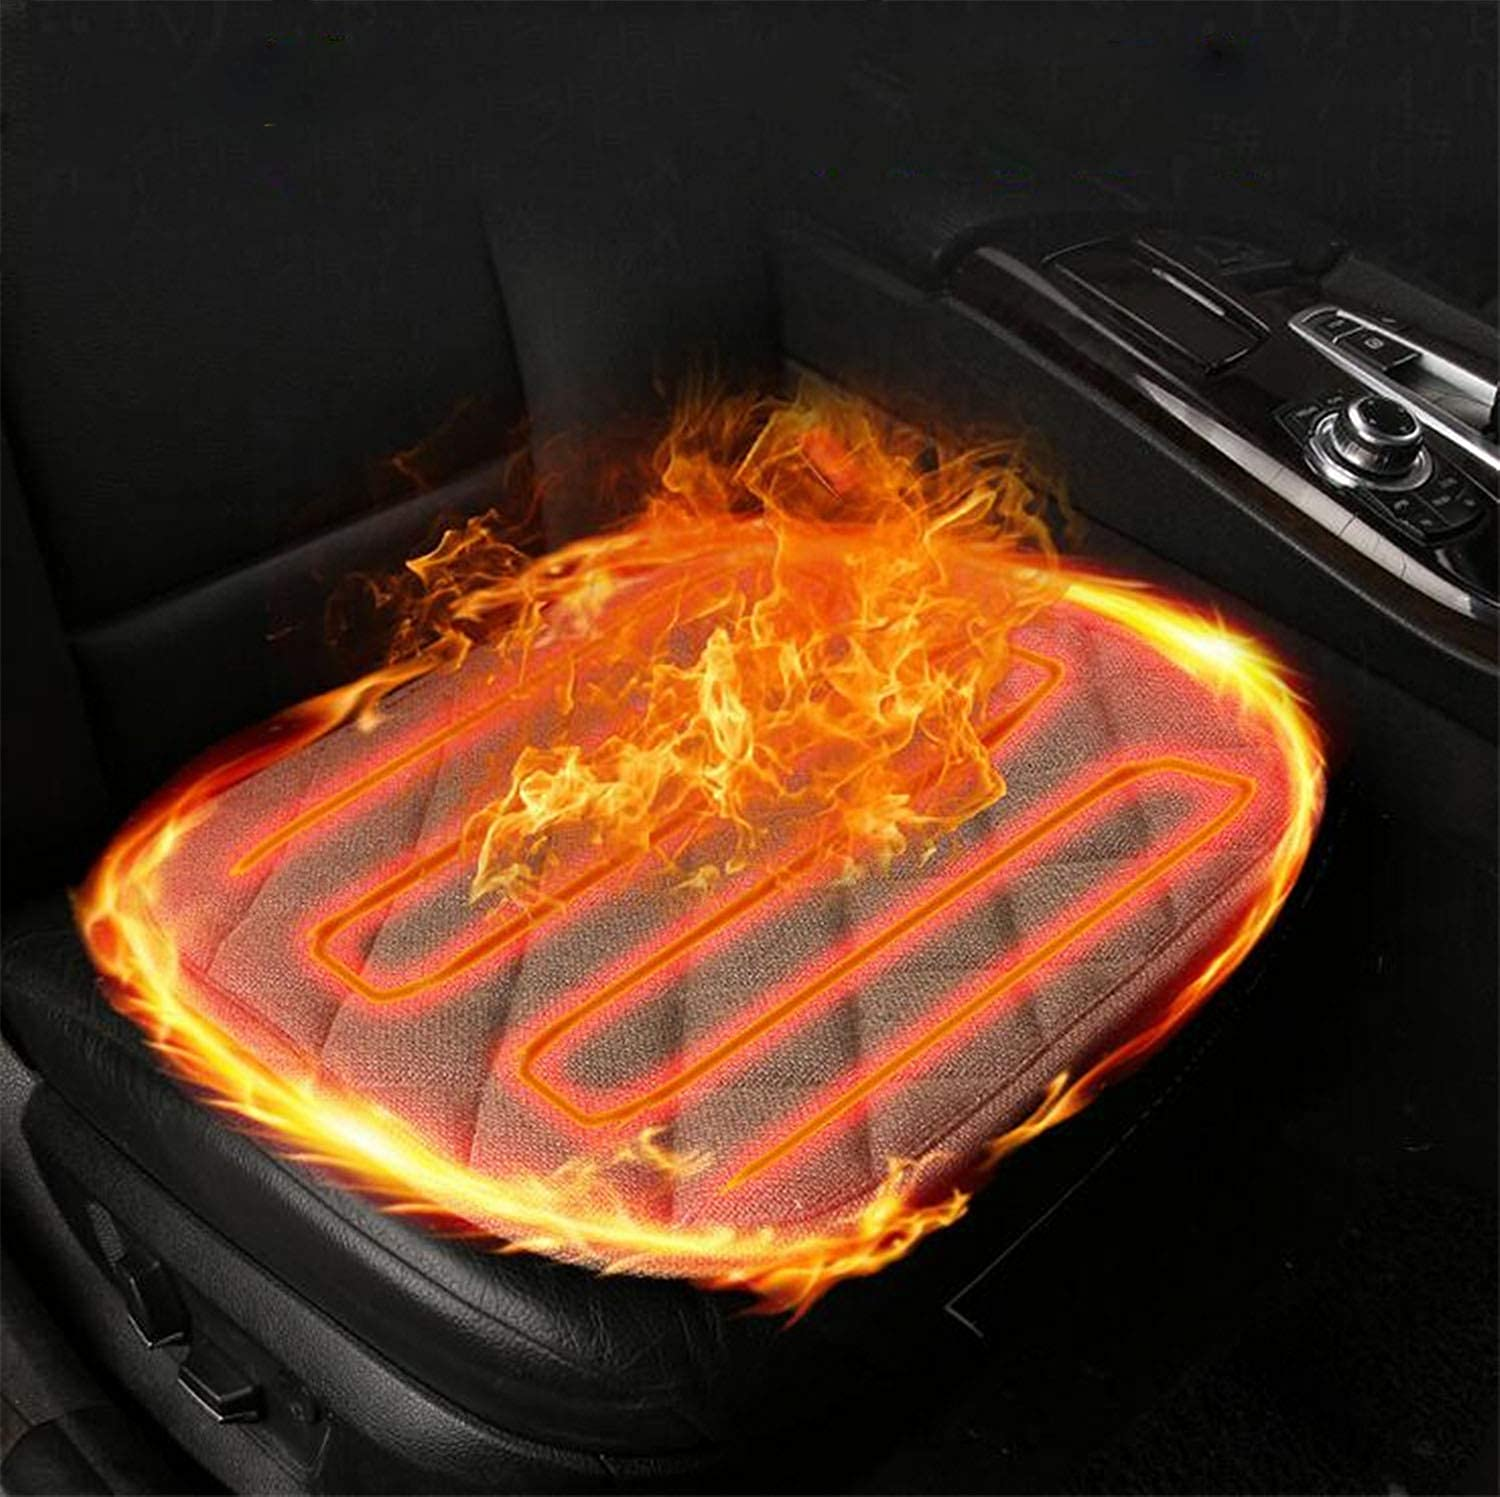 Car Heated Seat Cushion Hot Seat Cover Home Winter Warmer Pad Car Supplies 12V Universal Heat Pad Office Winter Mat Ideal for Coming Cold Winter Days (48  51cm)2pcs